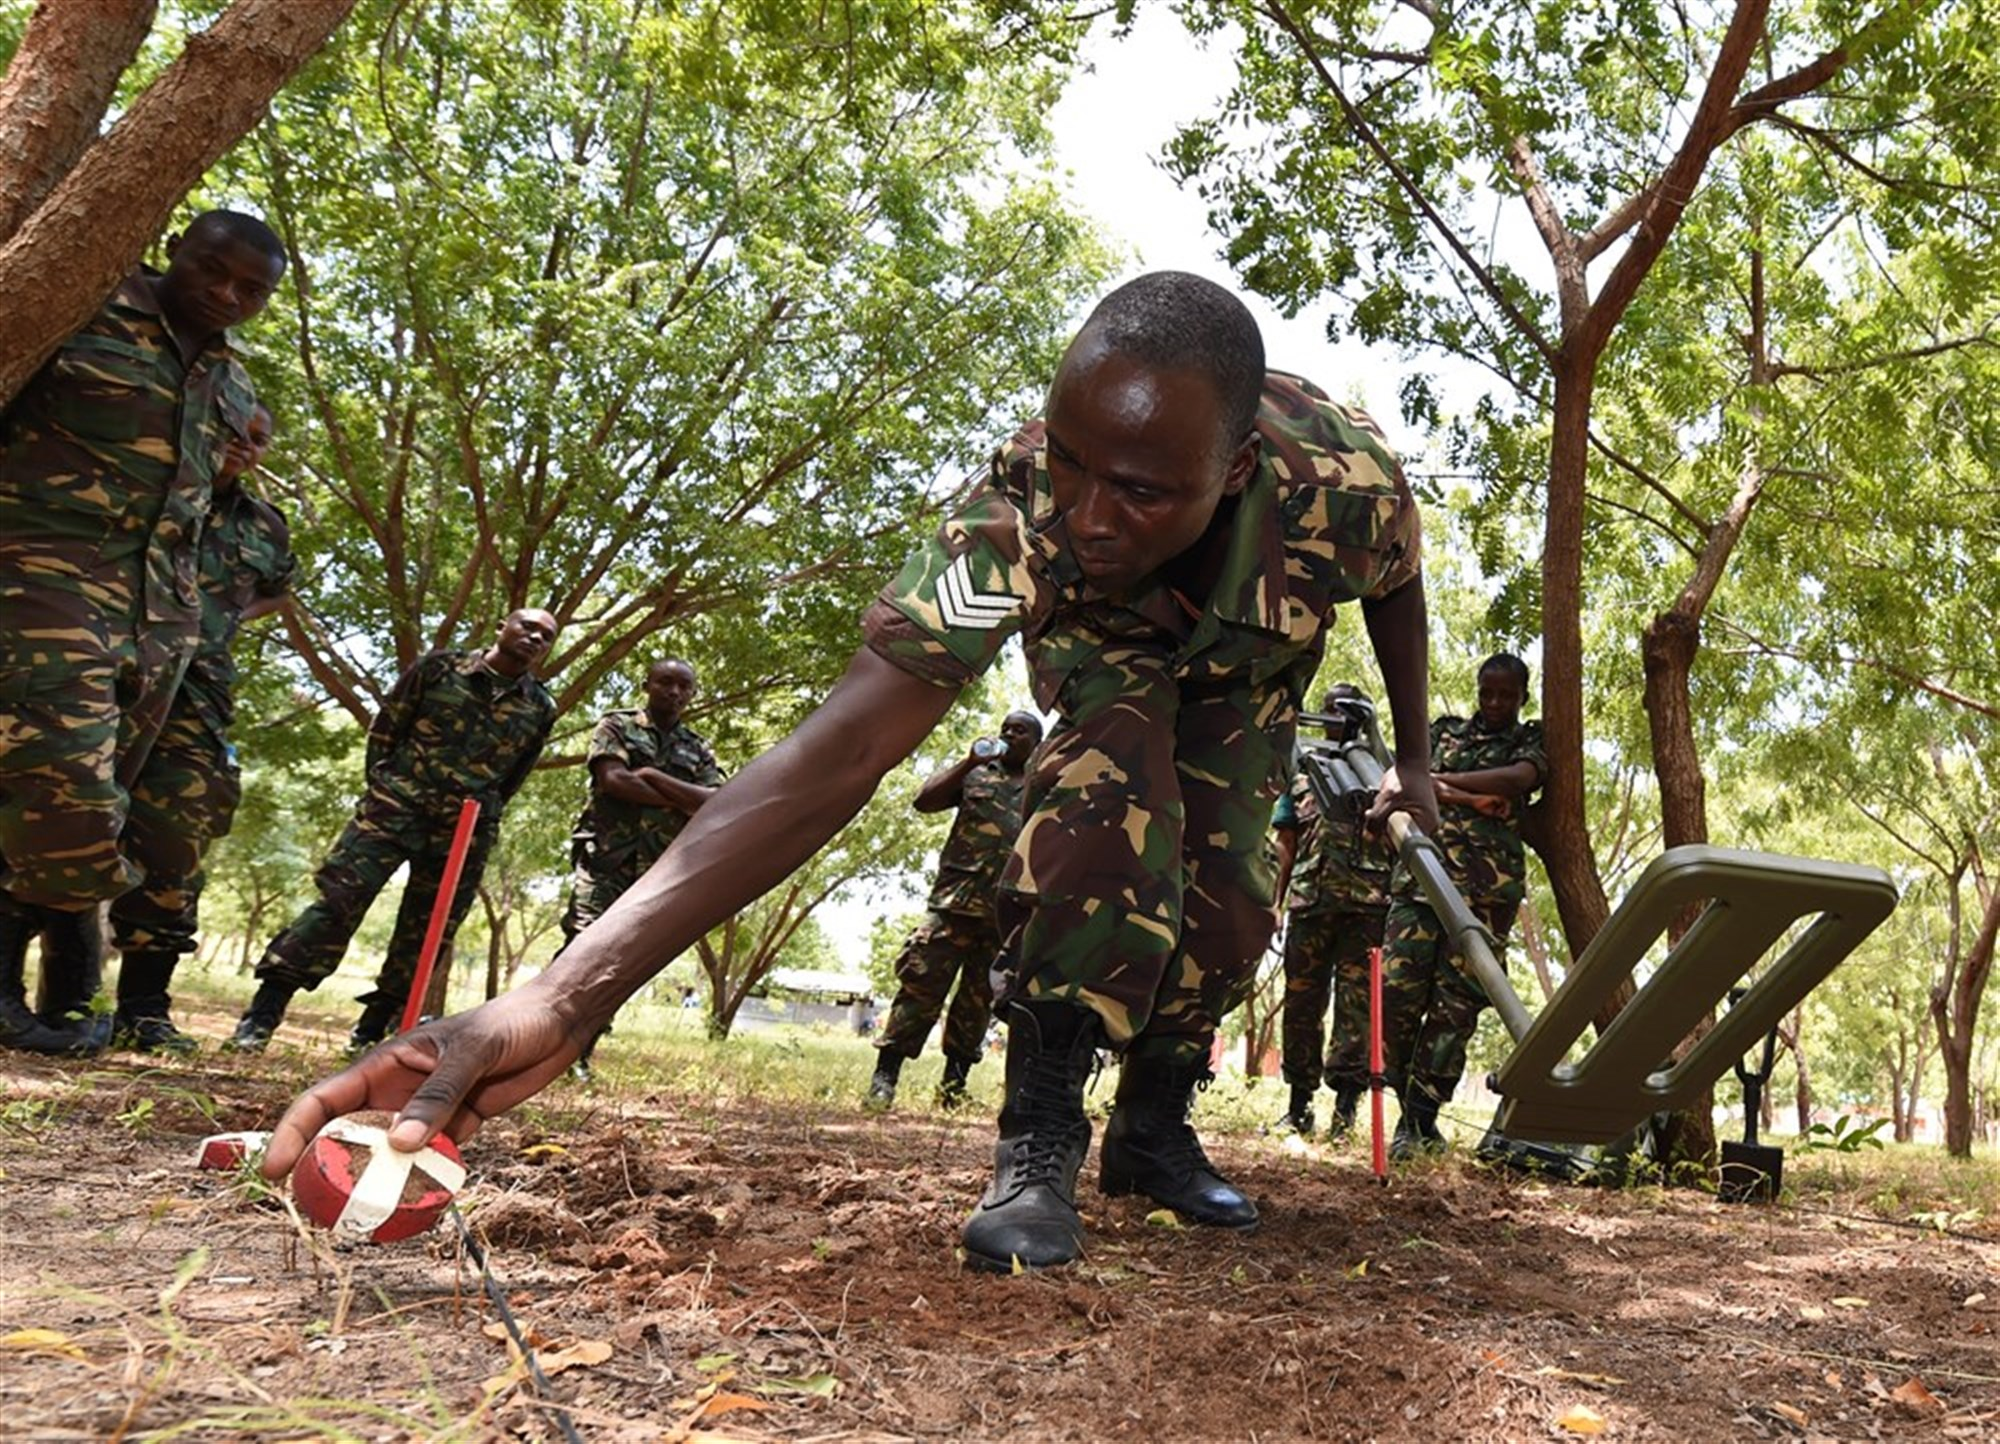 Sgt. Gaudence Siame, Tanzania People's Defense Force ammunition technician, places a metal shape aside during a metal detector familiarization class at the Peace Keeping Training Center in Dar es Salaam, Tanzania Aug. 23, 2015. Two U.S. Navy Explosive Ordnance Disposal technicians, assigned to Combined to Joint Task Force- Horn of Africa, instructed a three-week Humanitarian Mine Action course to TPDF ammunition technicians and officers in order to increase ordnance knowledge.